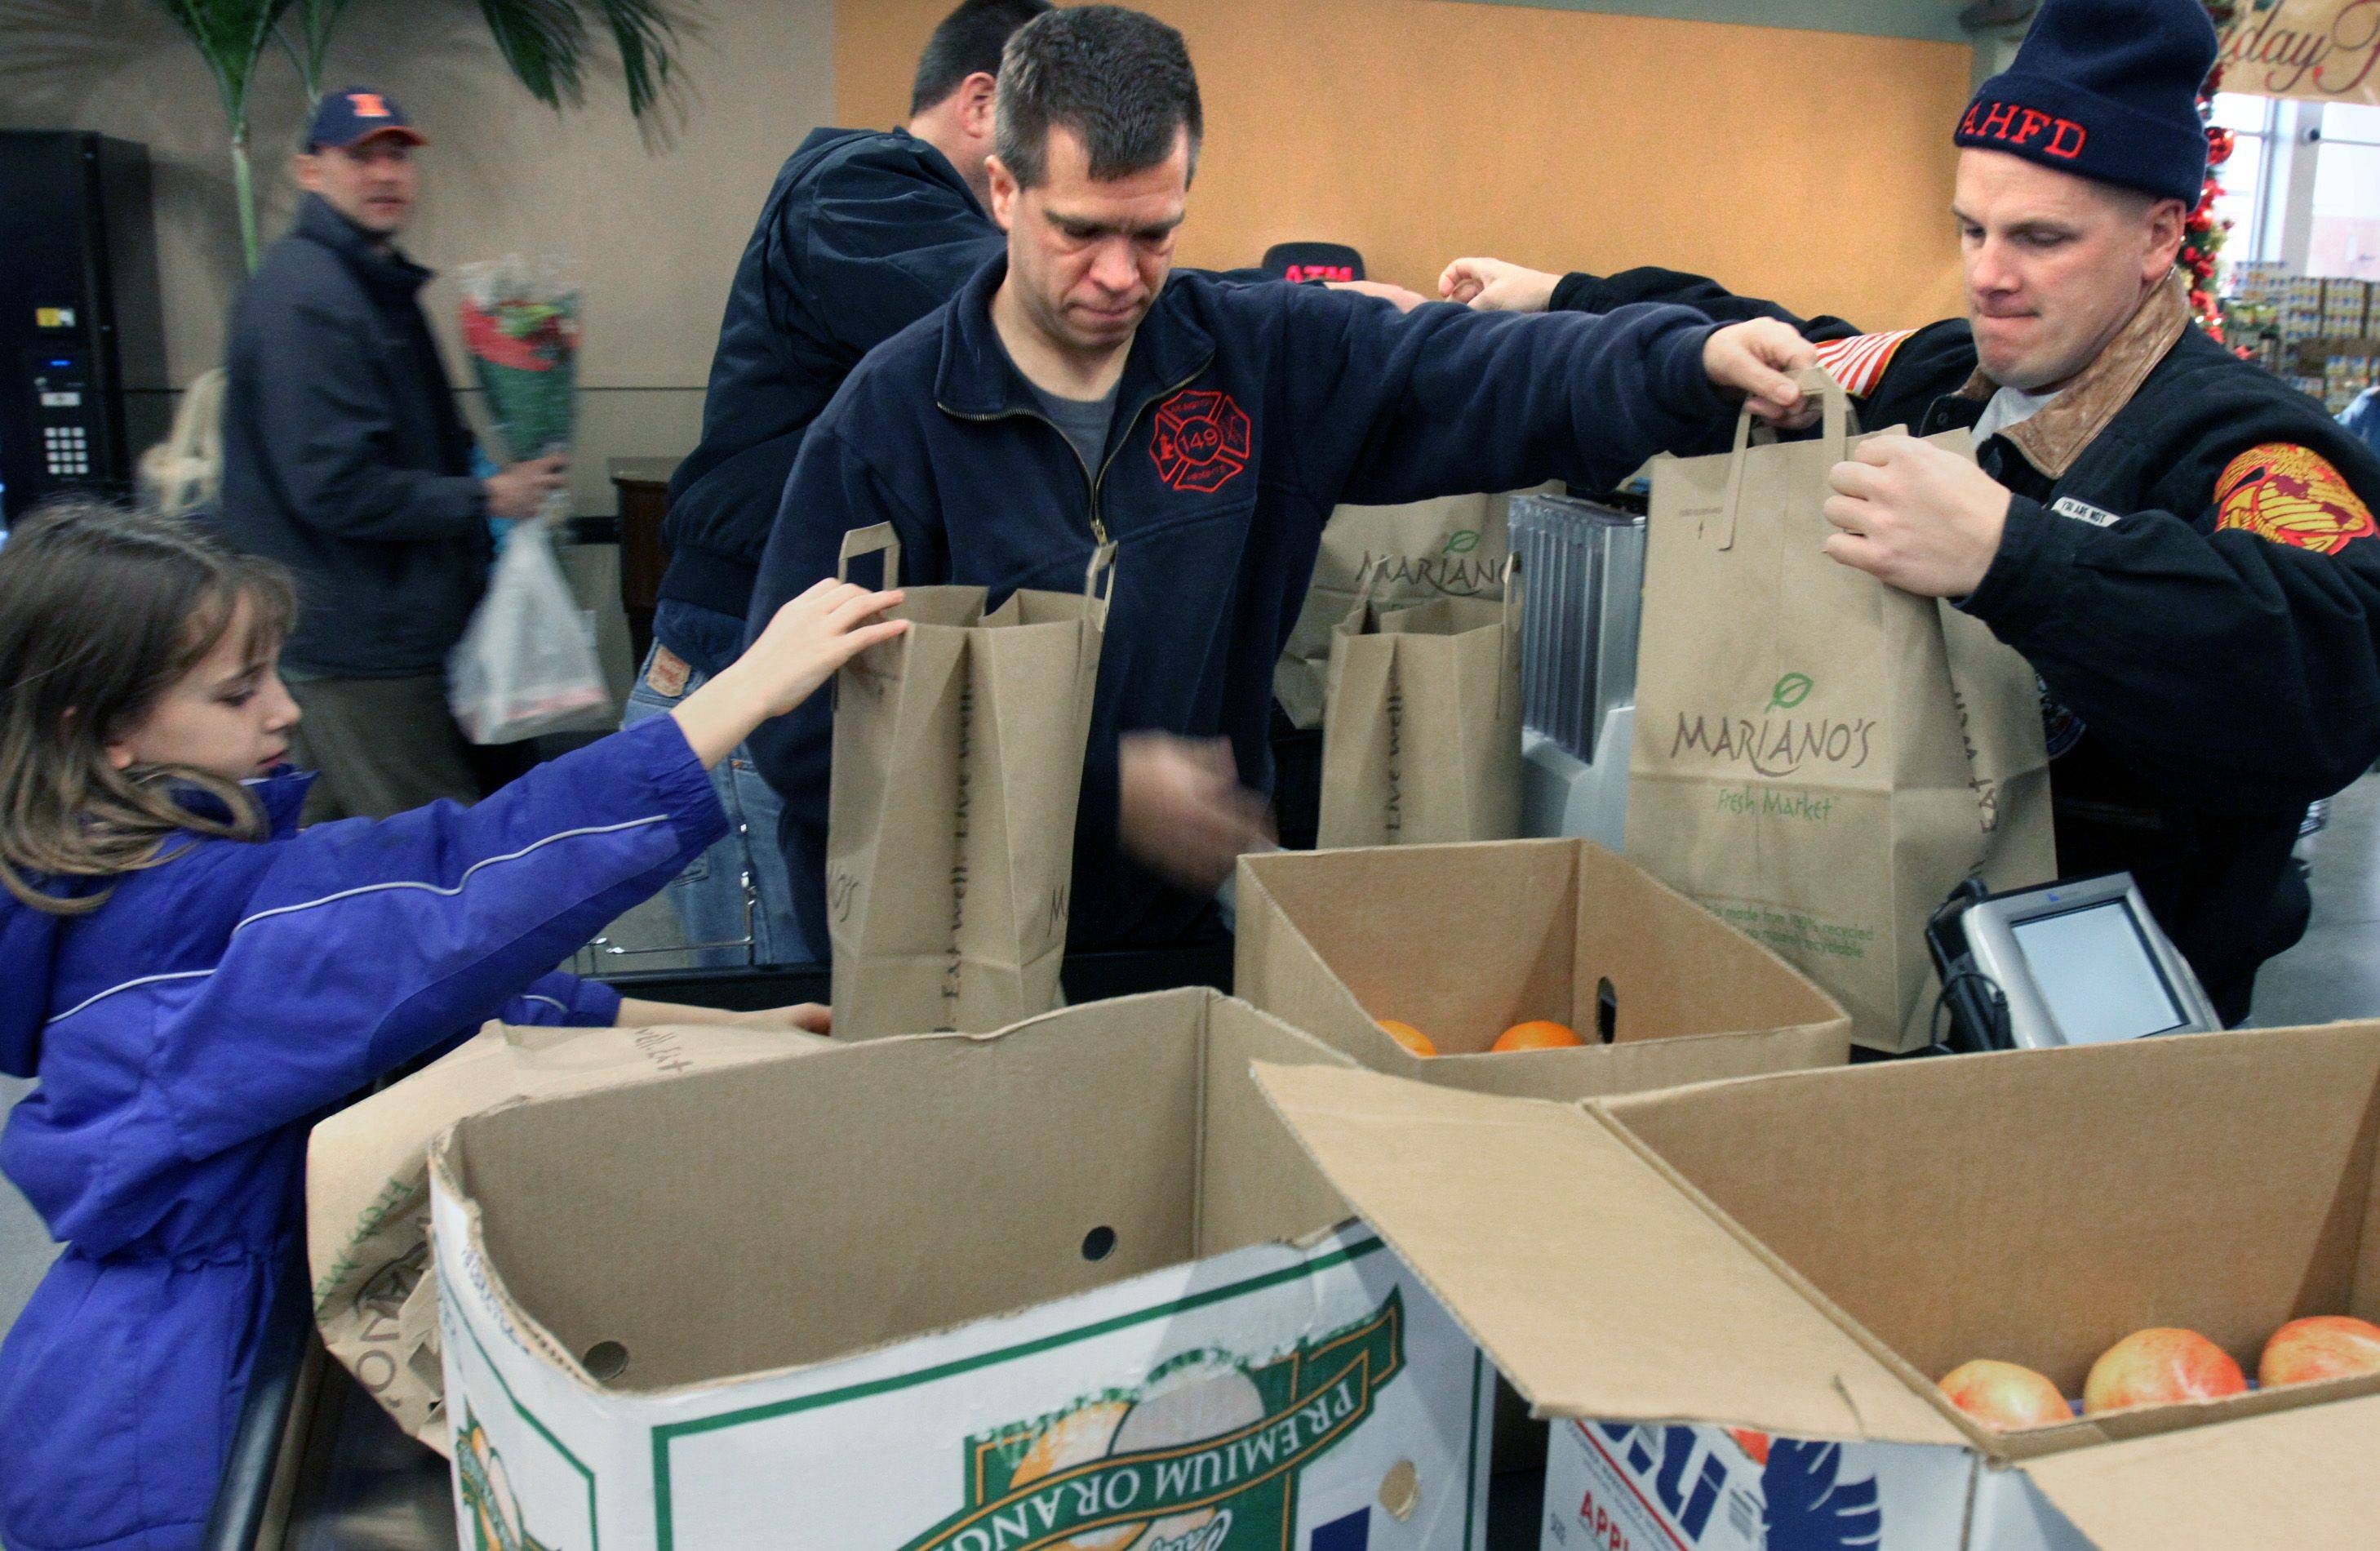 Arlington Heights firefighter EJ Mampe, right, and firefighter Stu Kuhn, center, and his daughter Abbey, 8, pack up bags filled with complete holiday meals at Mariano's Fresh Market in Arlington Heights Christmas Eve.